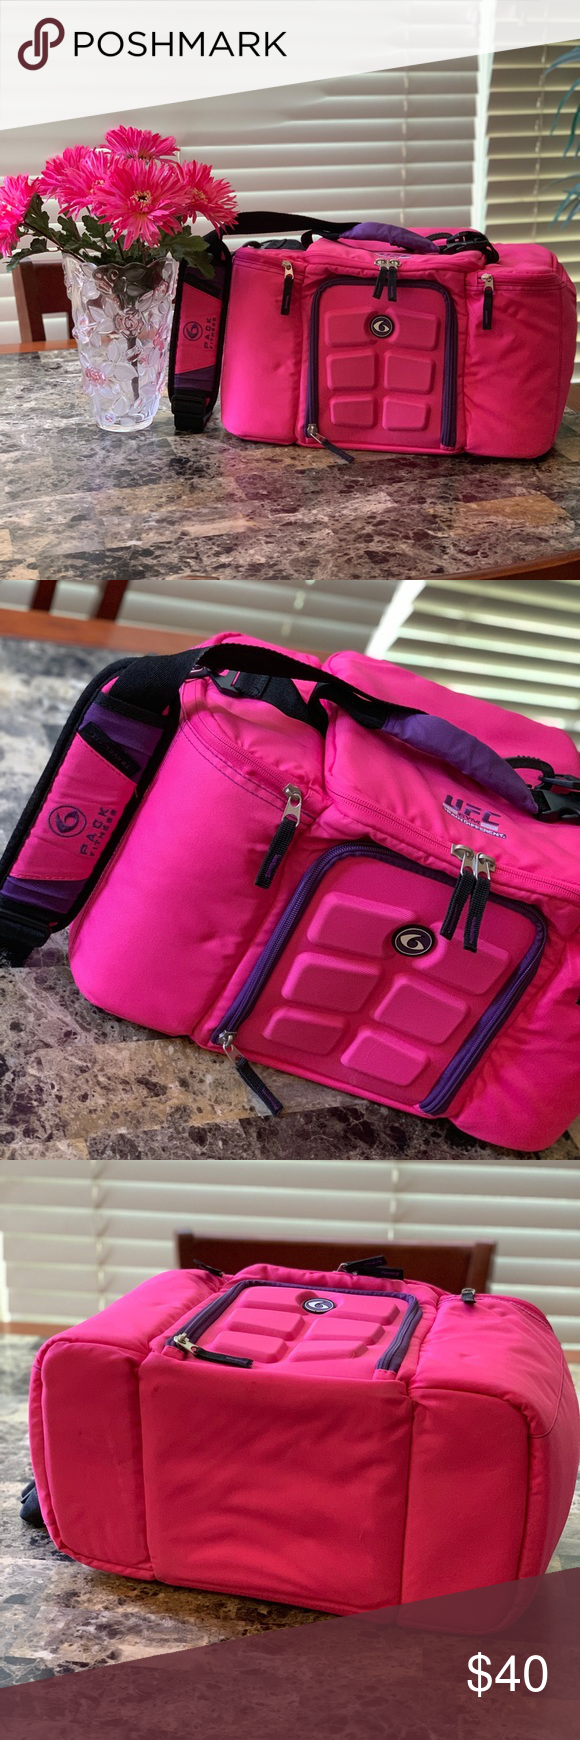 6 Pack Meal Prep Bag Pink UFC Gym Six Pack Fitness Six Pack Fitness - Meal Prep ...,  #Bag #f... -...